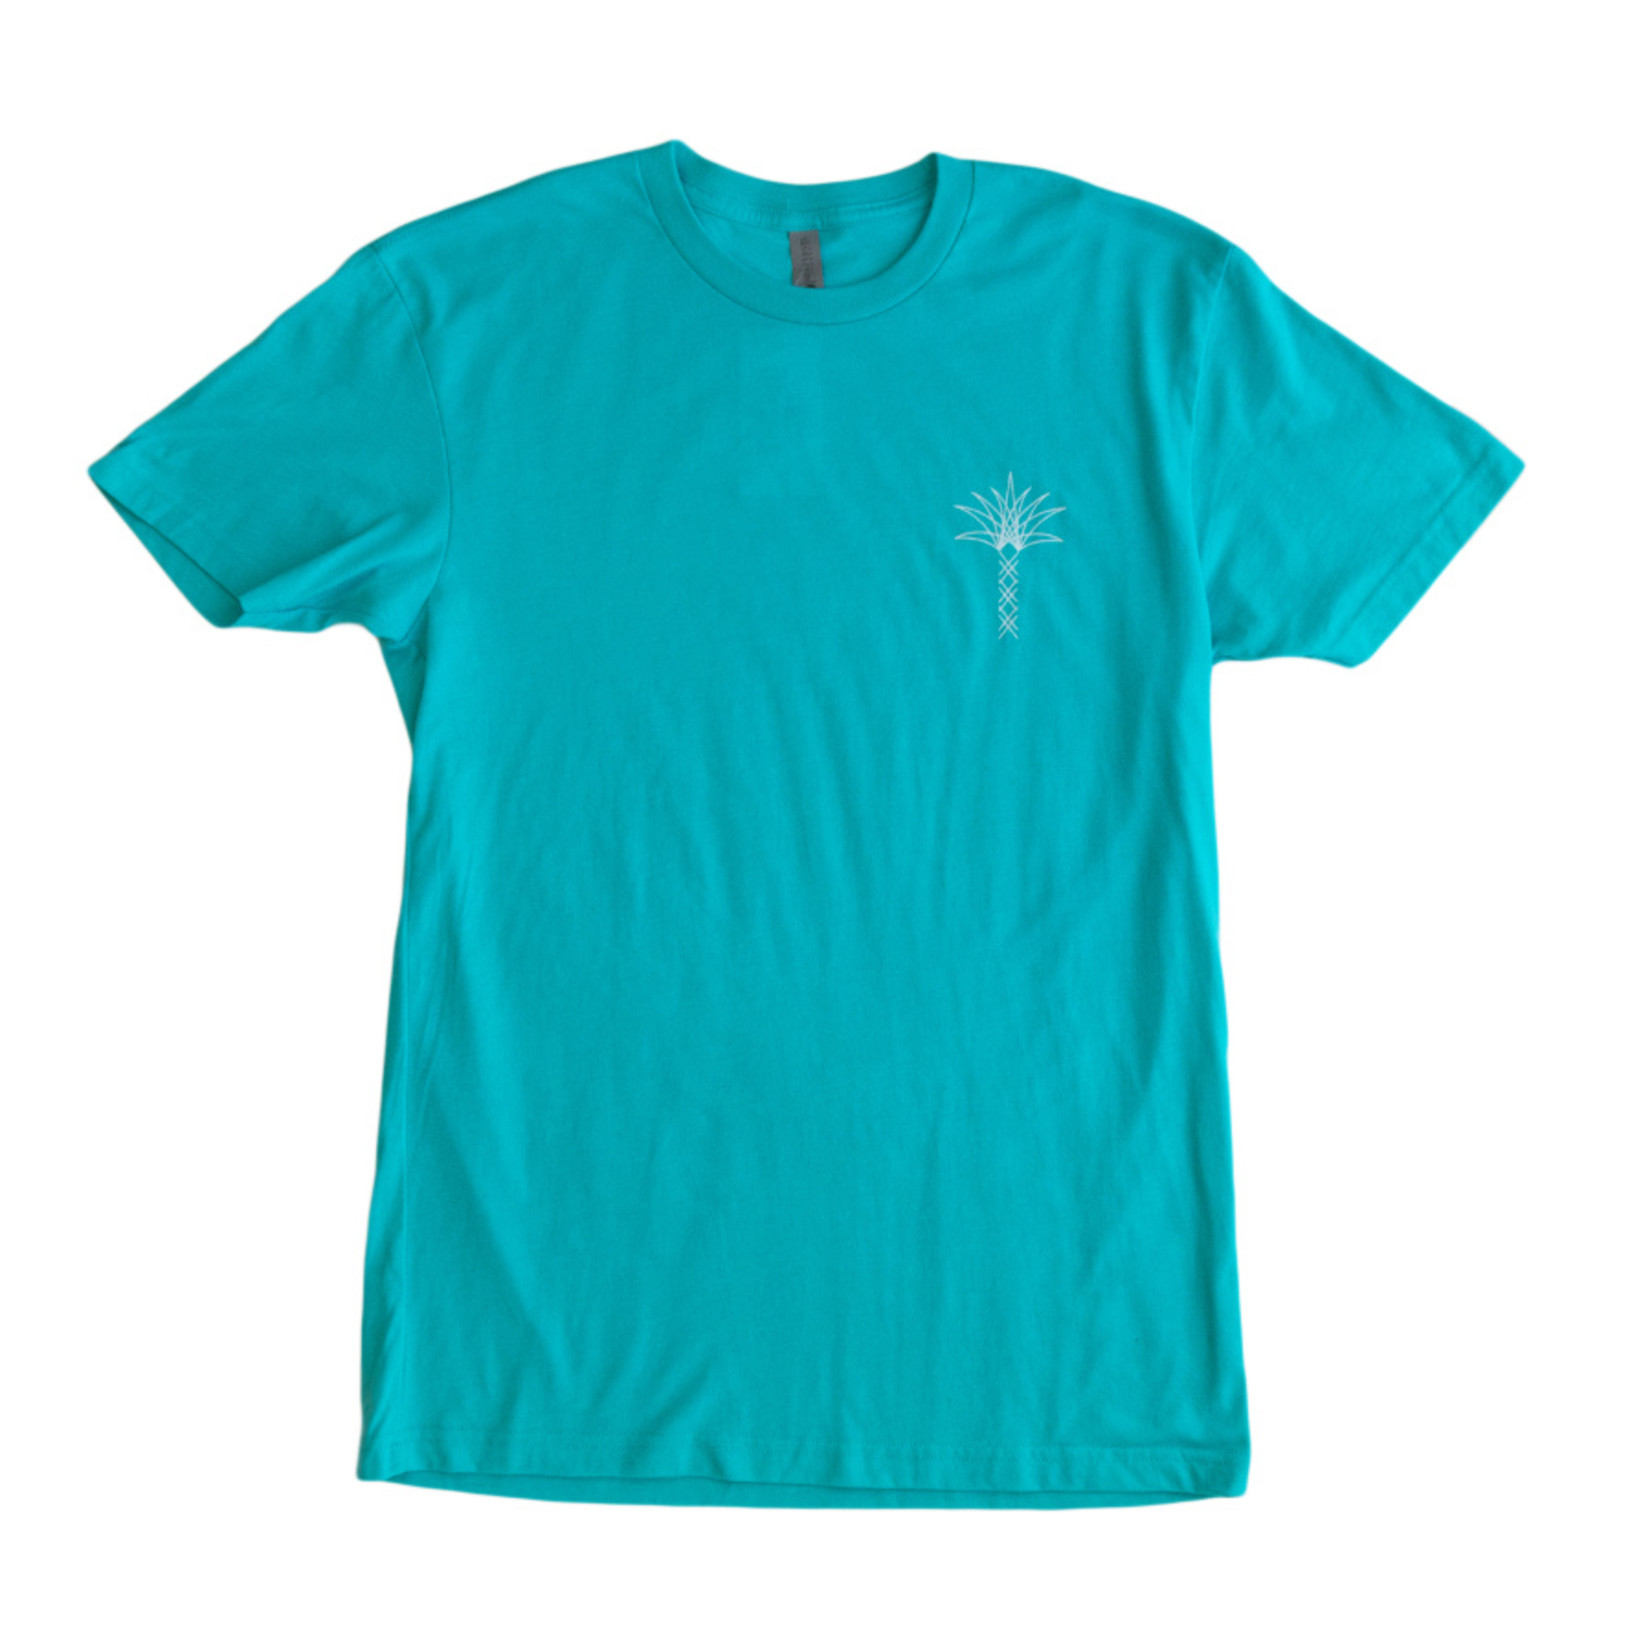 The Salty Palm The Salty Palm Tee